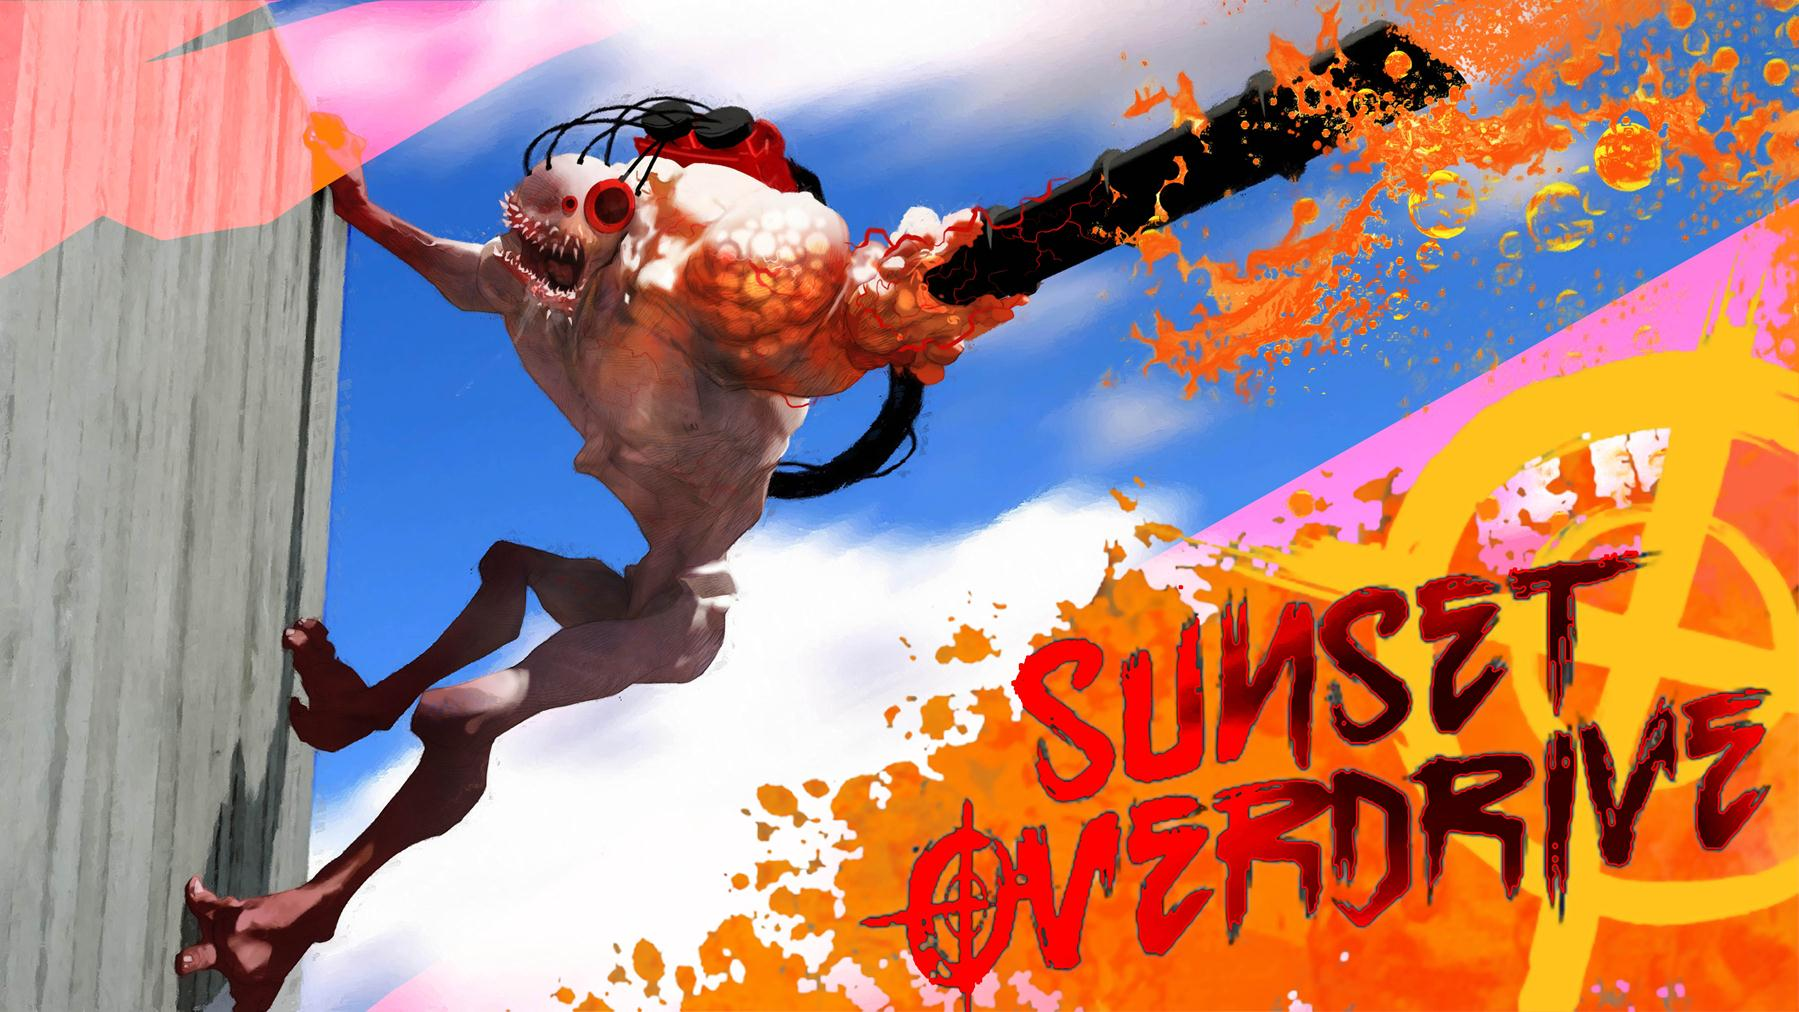 Sunset Overdrive A Brazen New IP With A Taste For Fun And